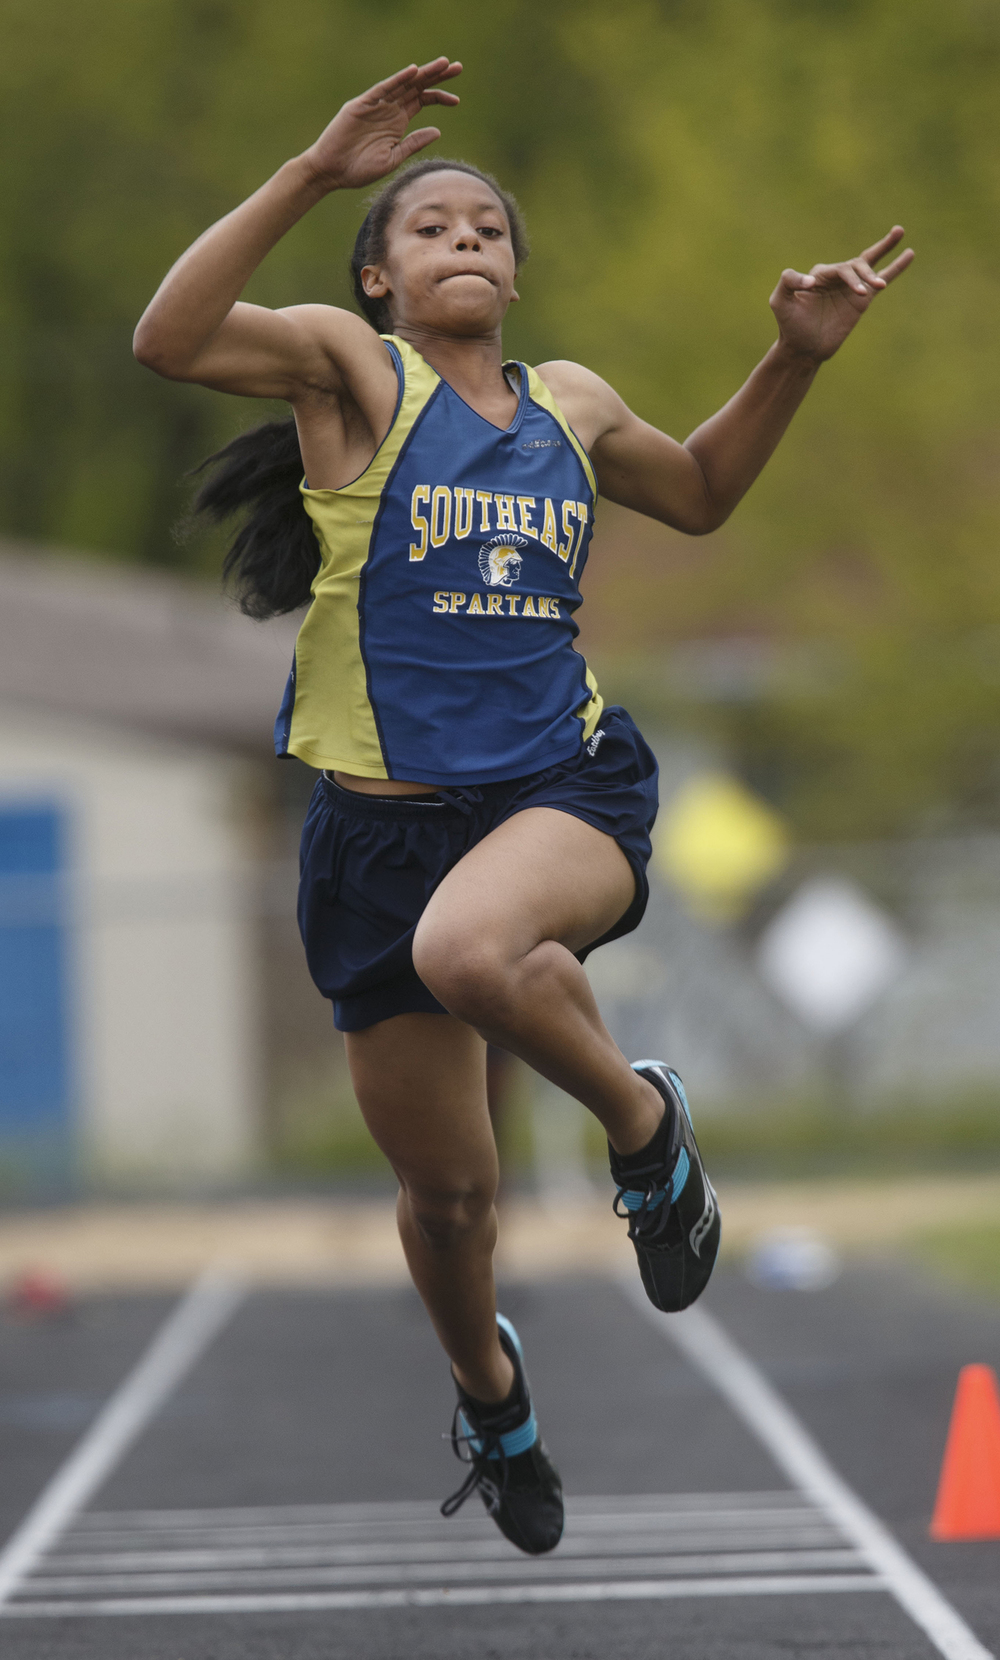 Southeast's Charlicia Watson competes in the triple jump during the 2015 Class AA Girls City meet at Southeast High School Wednesday, April 29, 2015. Watson won the event. Ted Schurter/The State Journal-Register